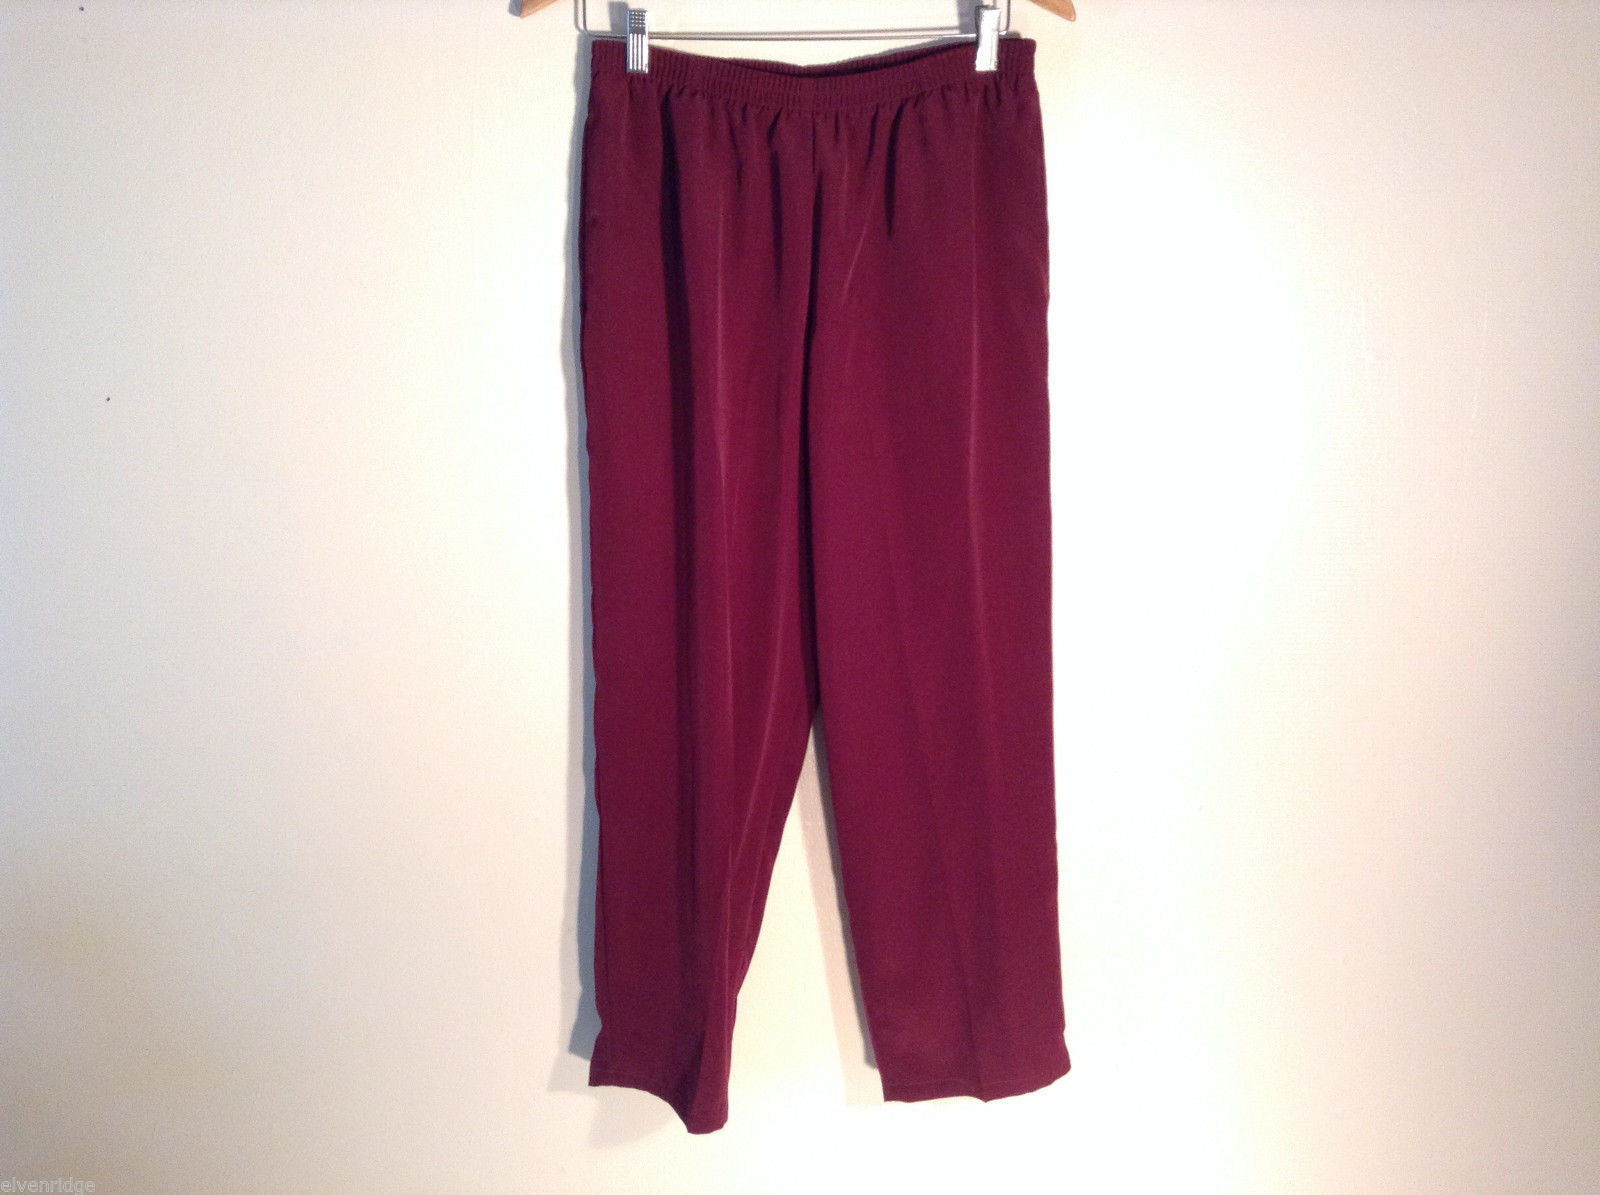 Womens WIllow Ridge burgundy size M-petite casual pants elastic waist 100% poly